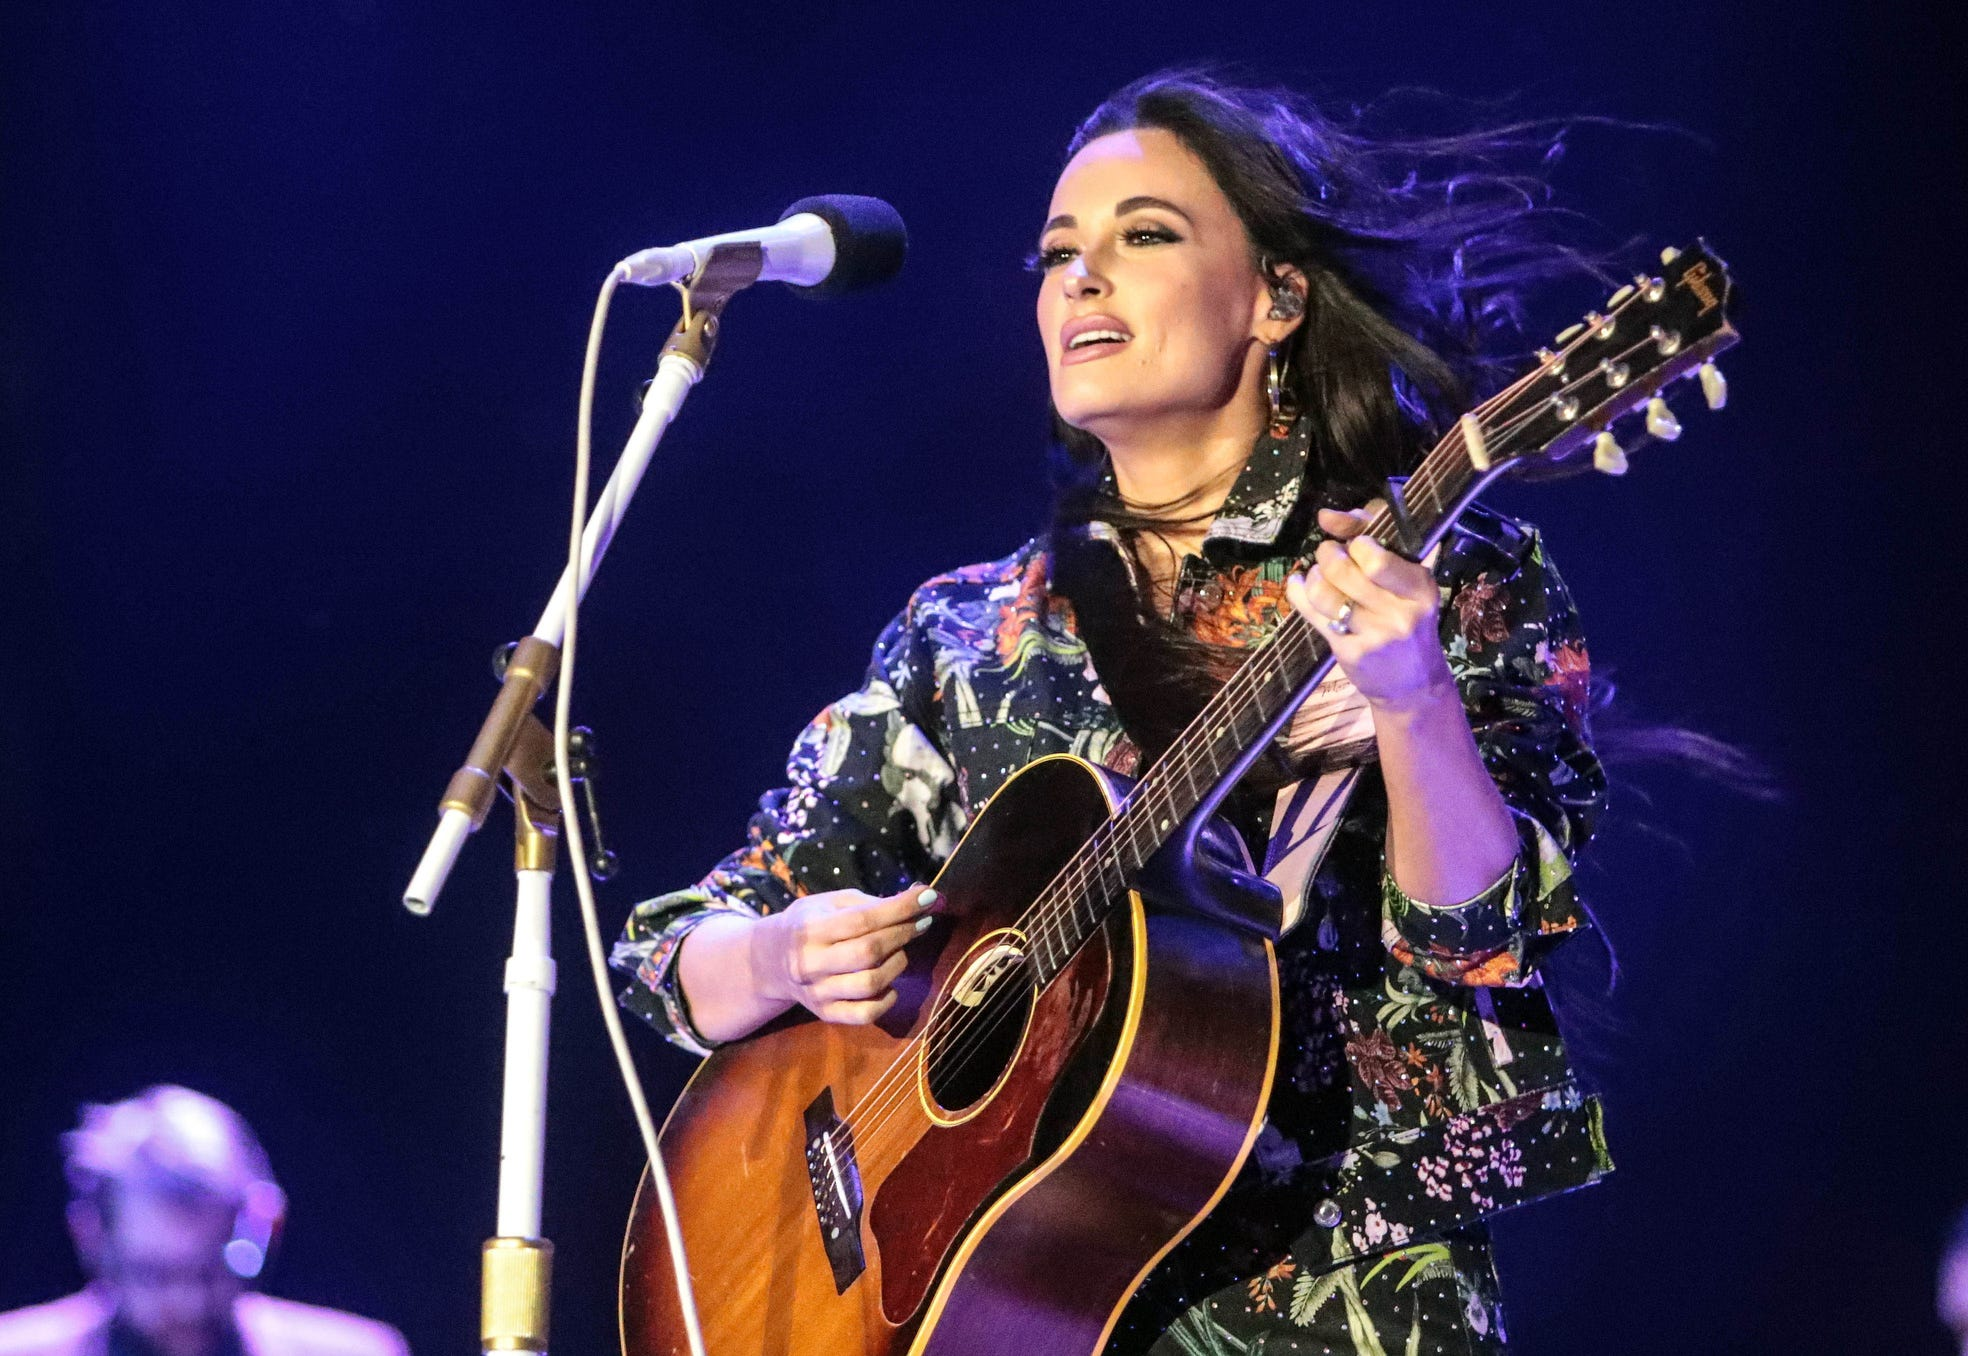 Kacey Musgraves returns to Iowa in August for an appearance at Hinterland Music Festival.